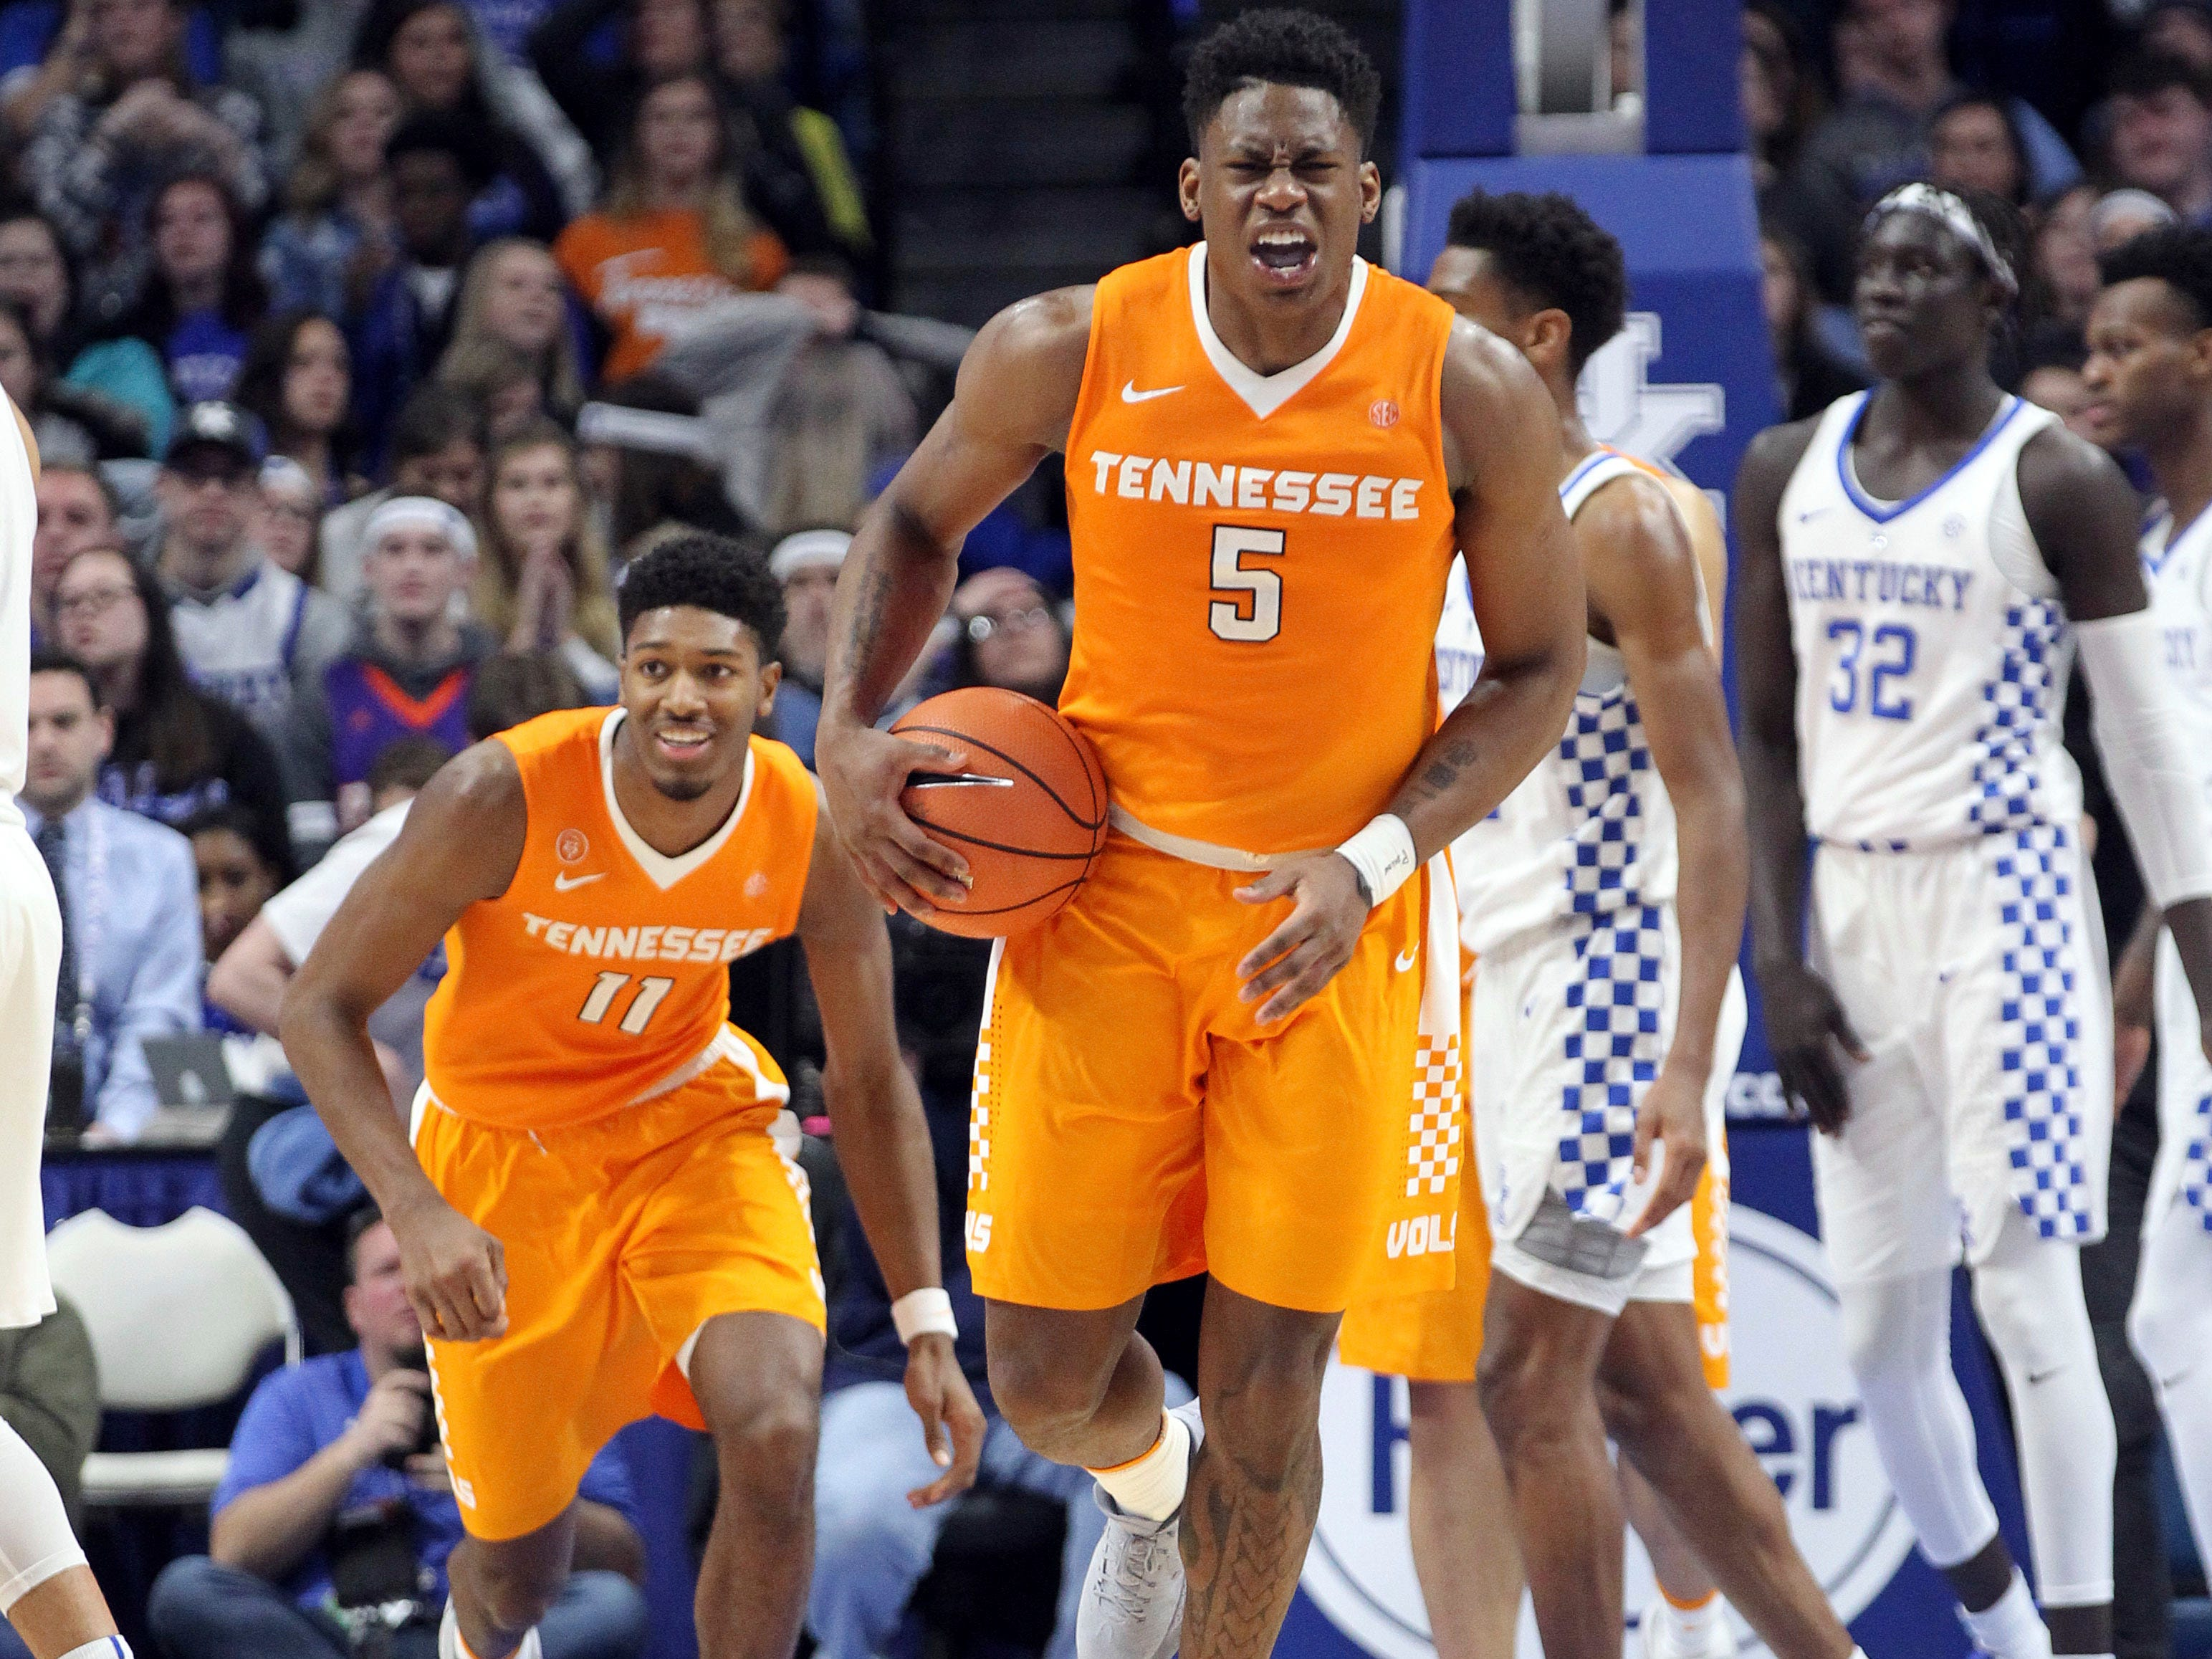 Tennessee vs. Kentucky basketball 'not just another one' for Vols